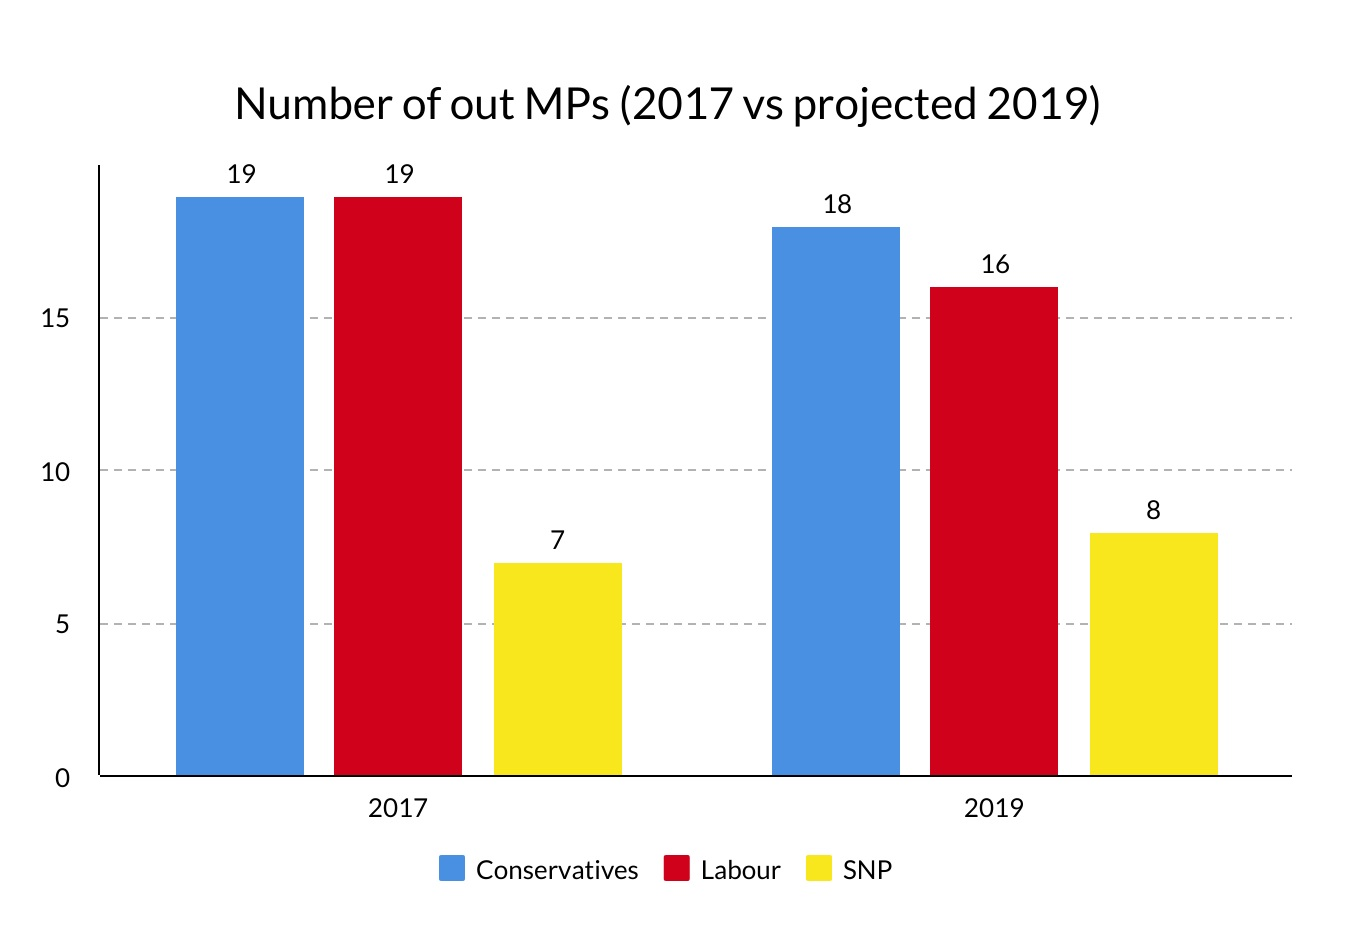 Despite the potential changes, odds are that LGBT+ representation in the House of Commons will remain stable after the general election